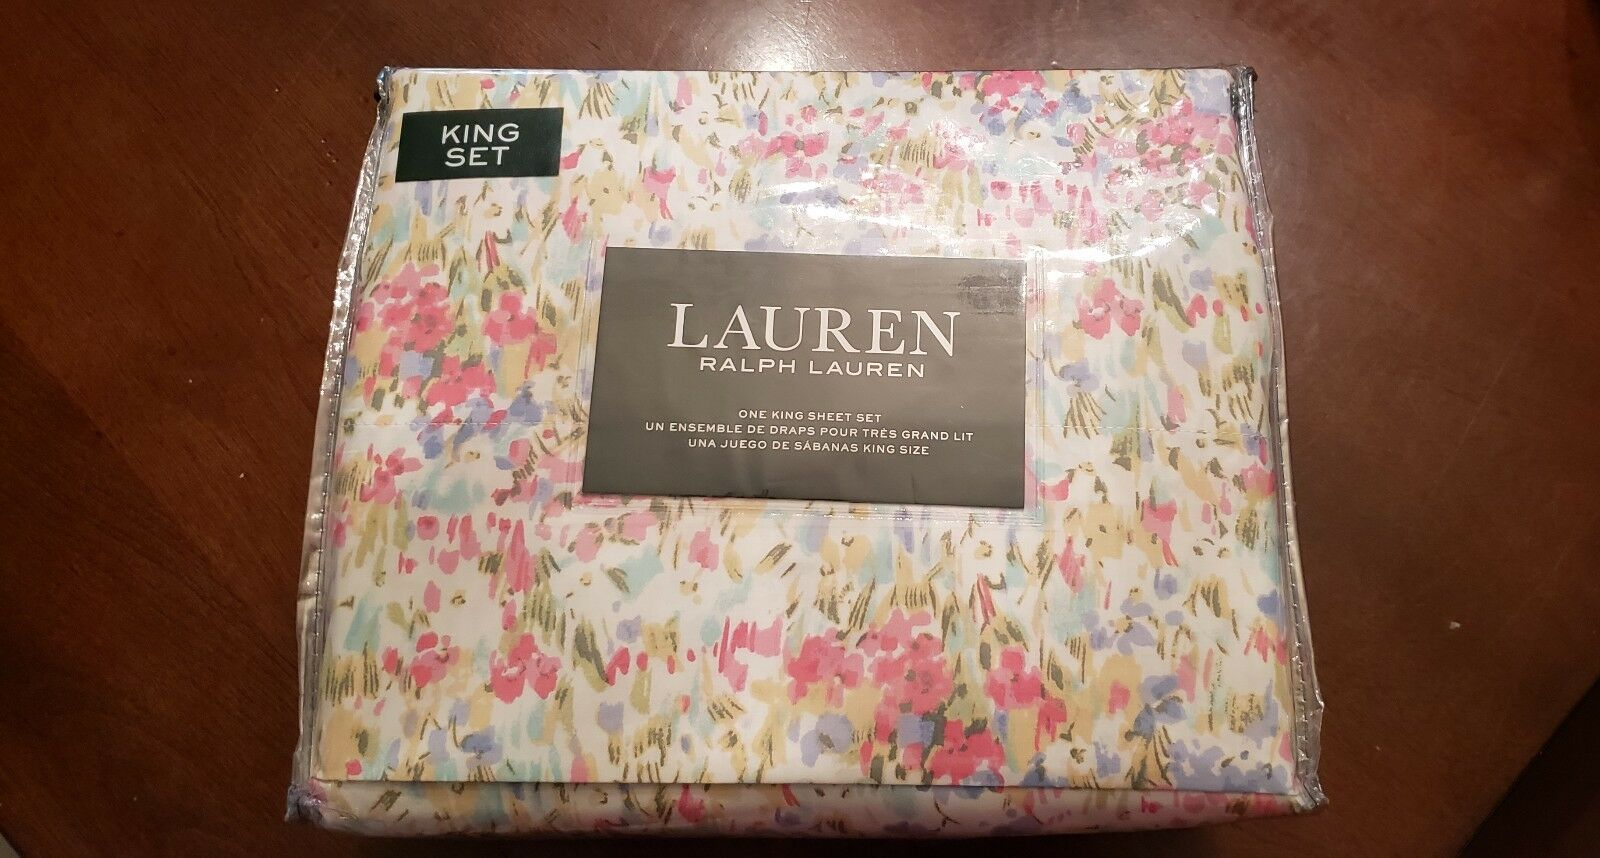 NEW Ralph Lauren LAUREN King Sheet Set